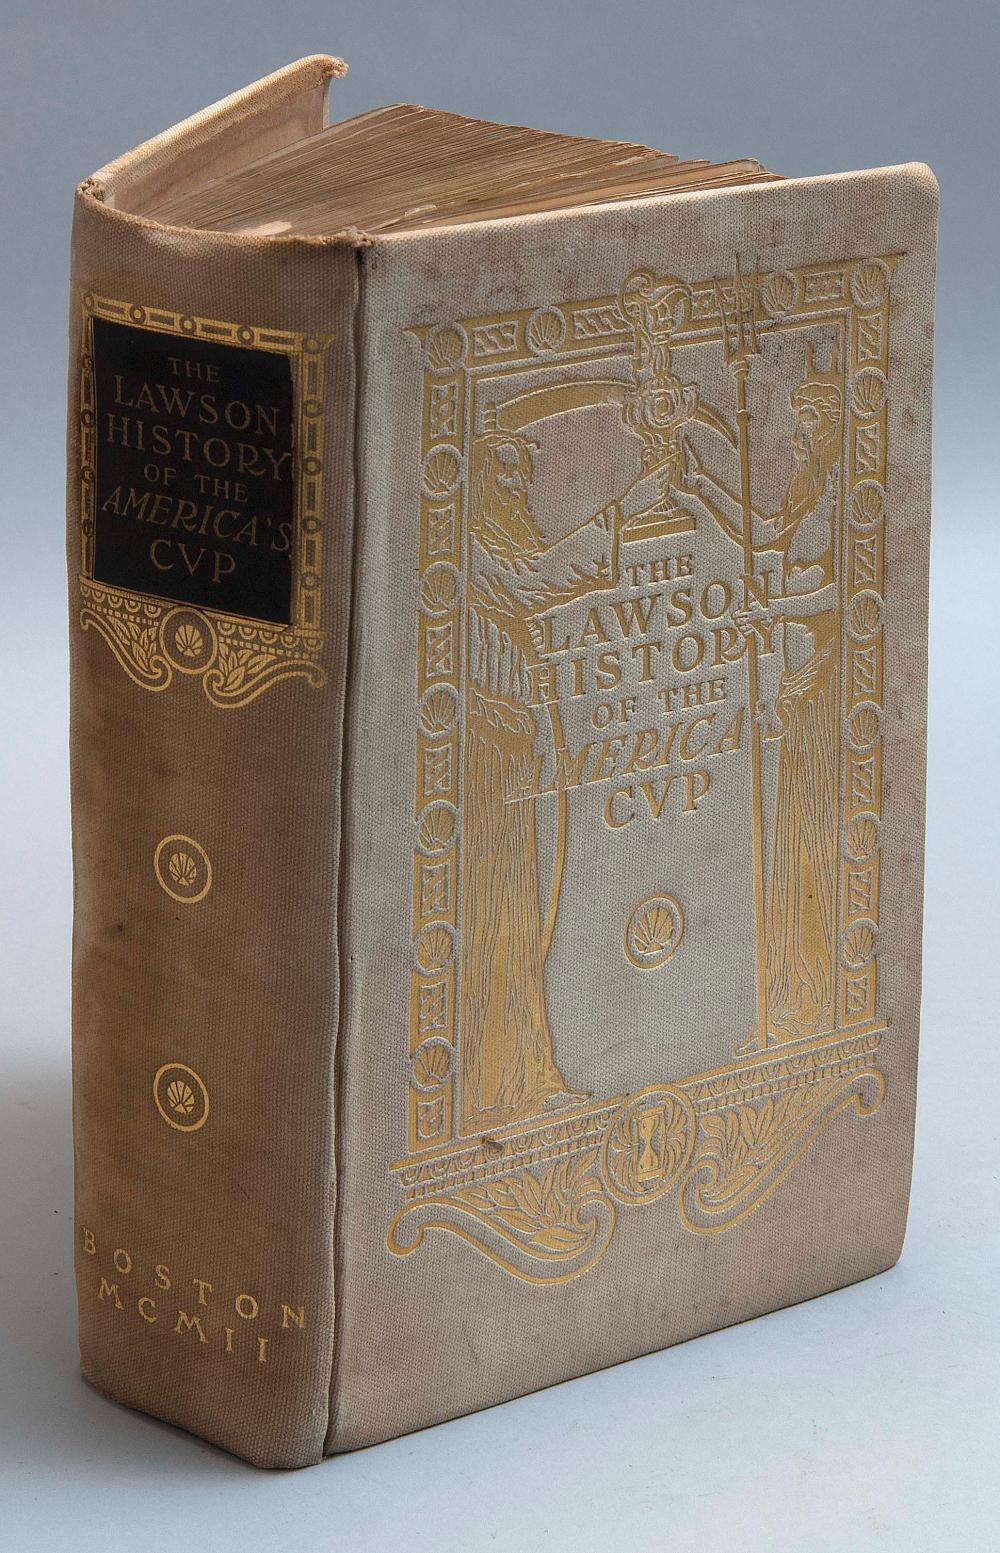 VOLUME ON AMERICA'S CUP The Lawson History of the America's Cup by W.M. Thompson and T.W. Lawson (Boston: 1902). Published for priva.